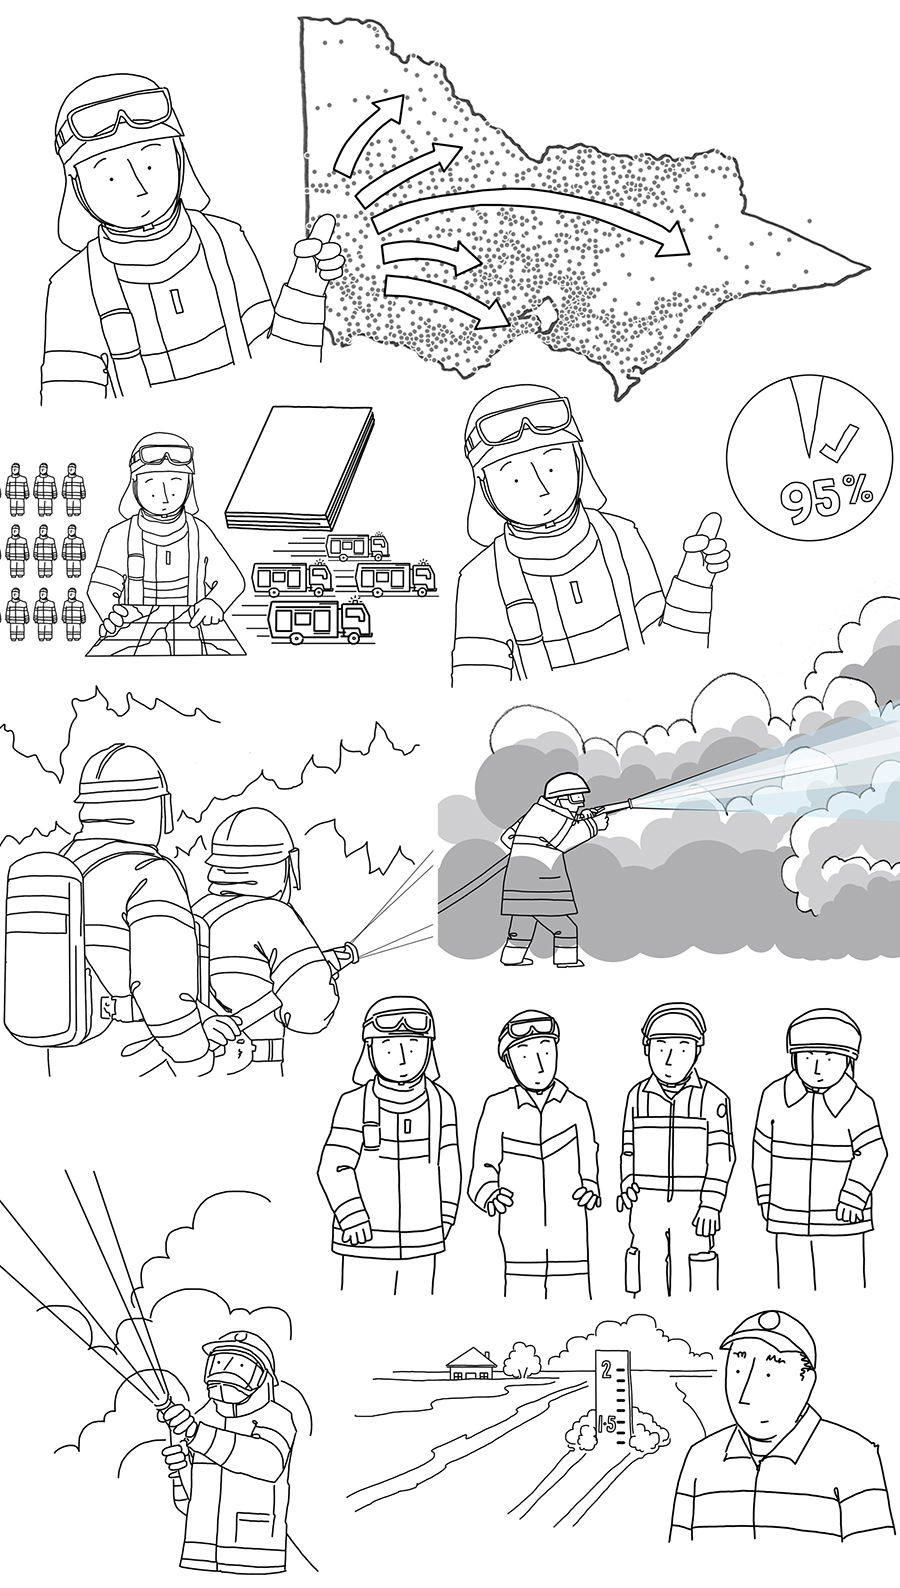 Volunteer fire brigade – whiteboard animation stills